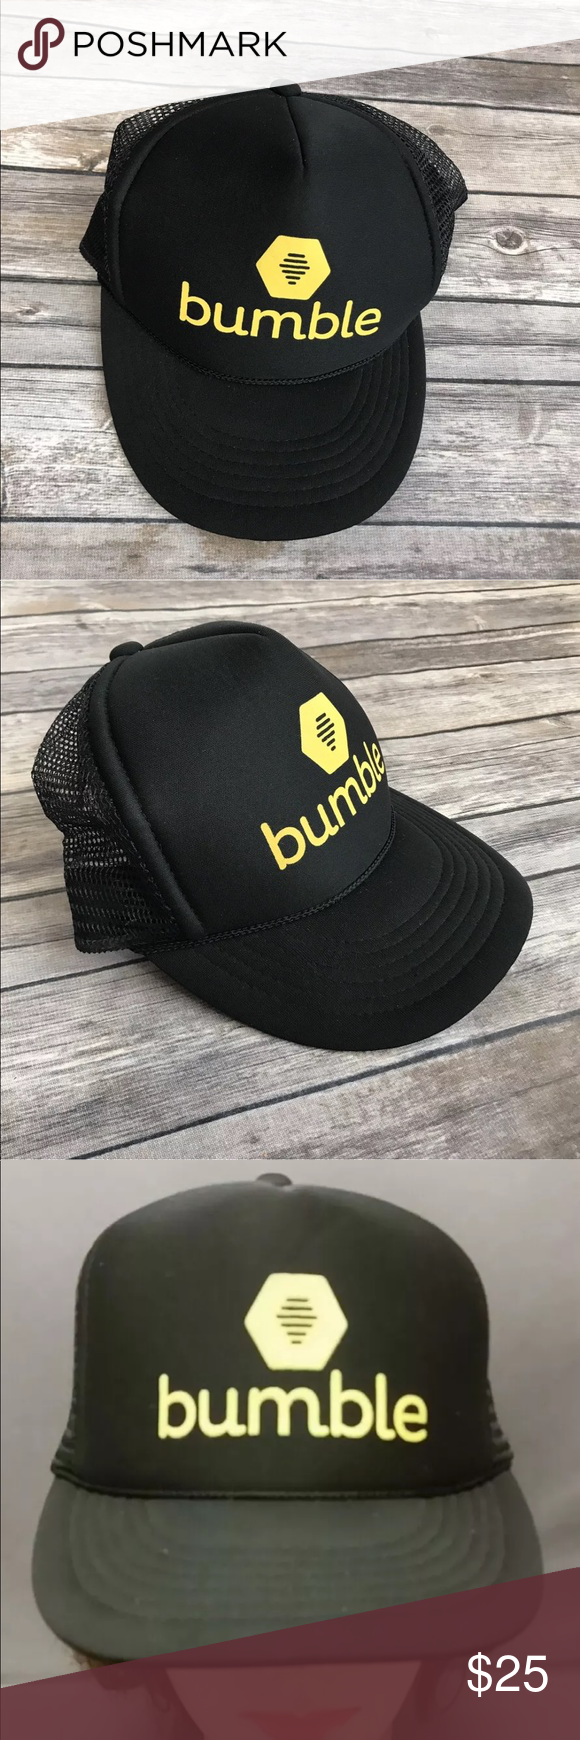 25c0002db0f BUMBLE dating app trucker hat social black mesh BUMBLE Social Dating App Hat  Trucker Cap Mesh Black SnapBack Yellow Adjustable New without tags.